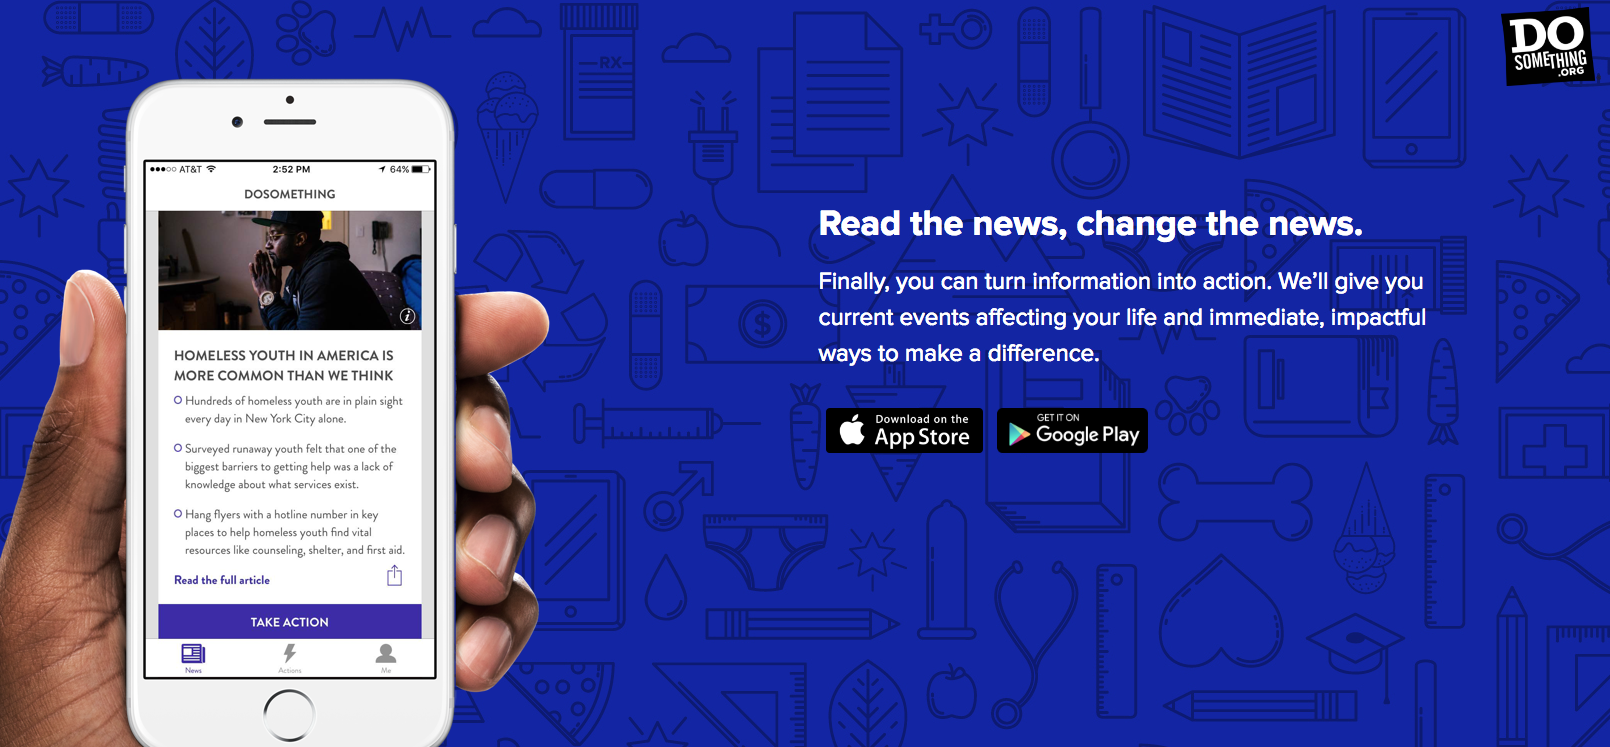 Thanks to Our Brand New App, Young People Can Make an Immediate